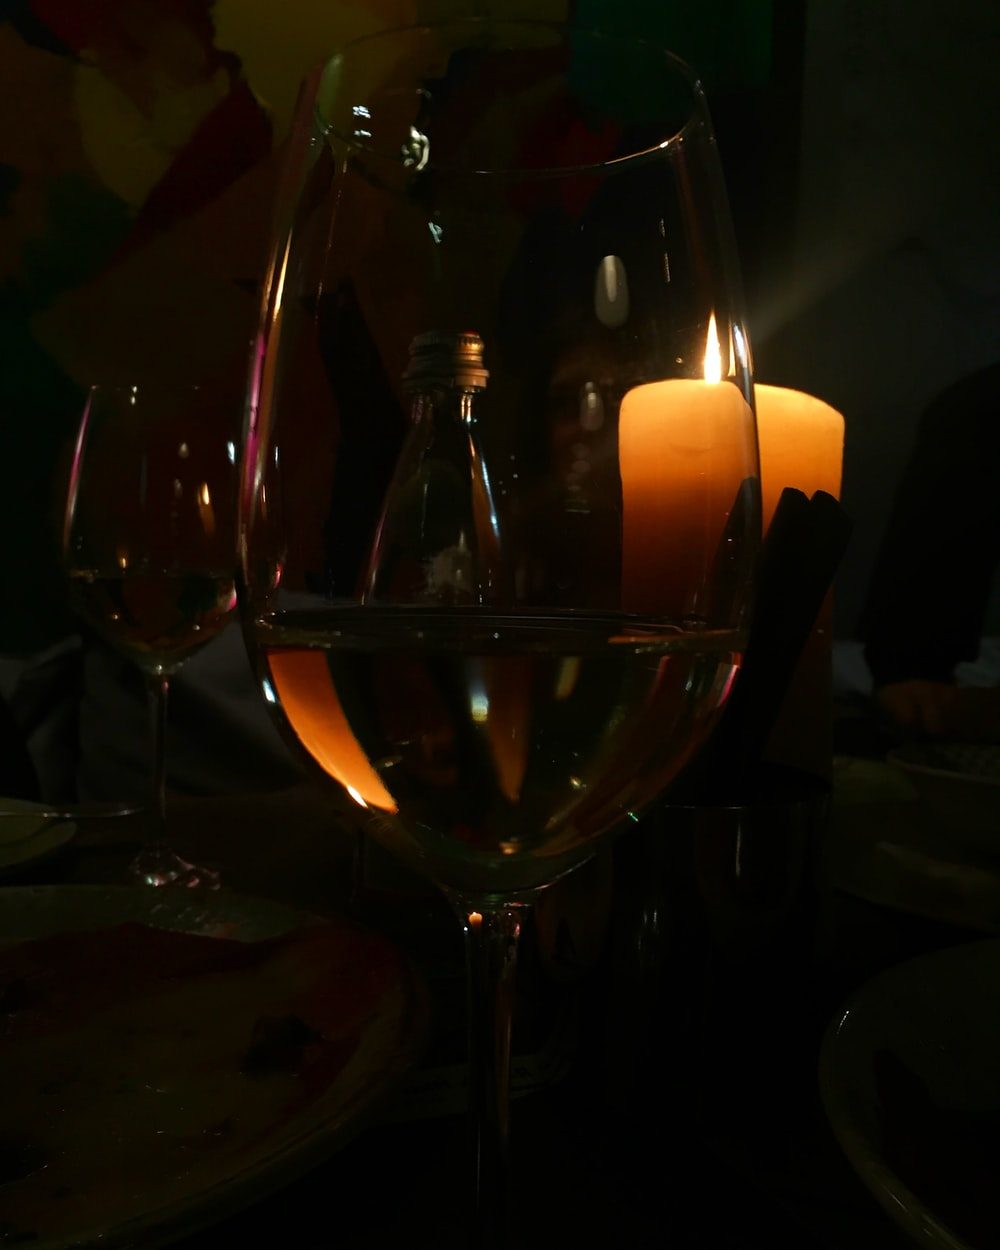 white wine in wine glass near lighted yellow pillar candles